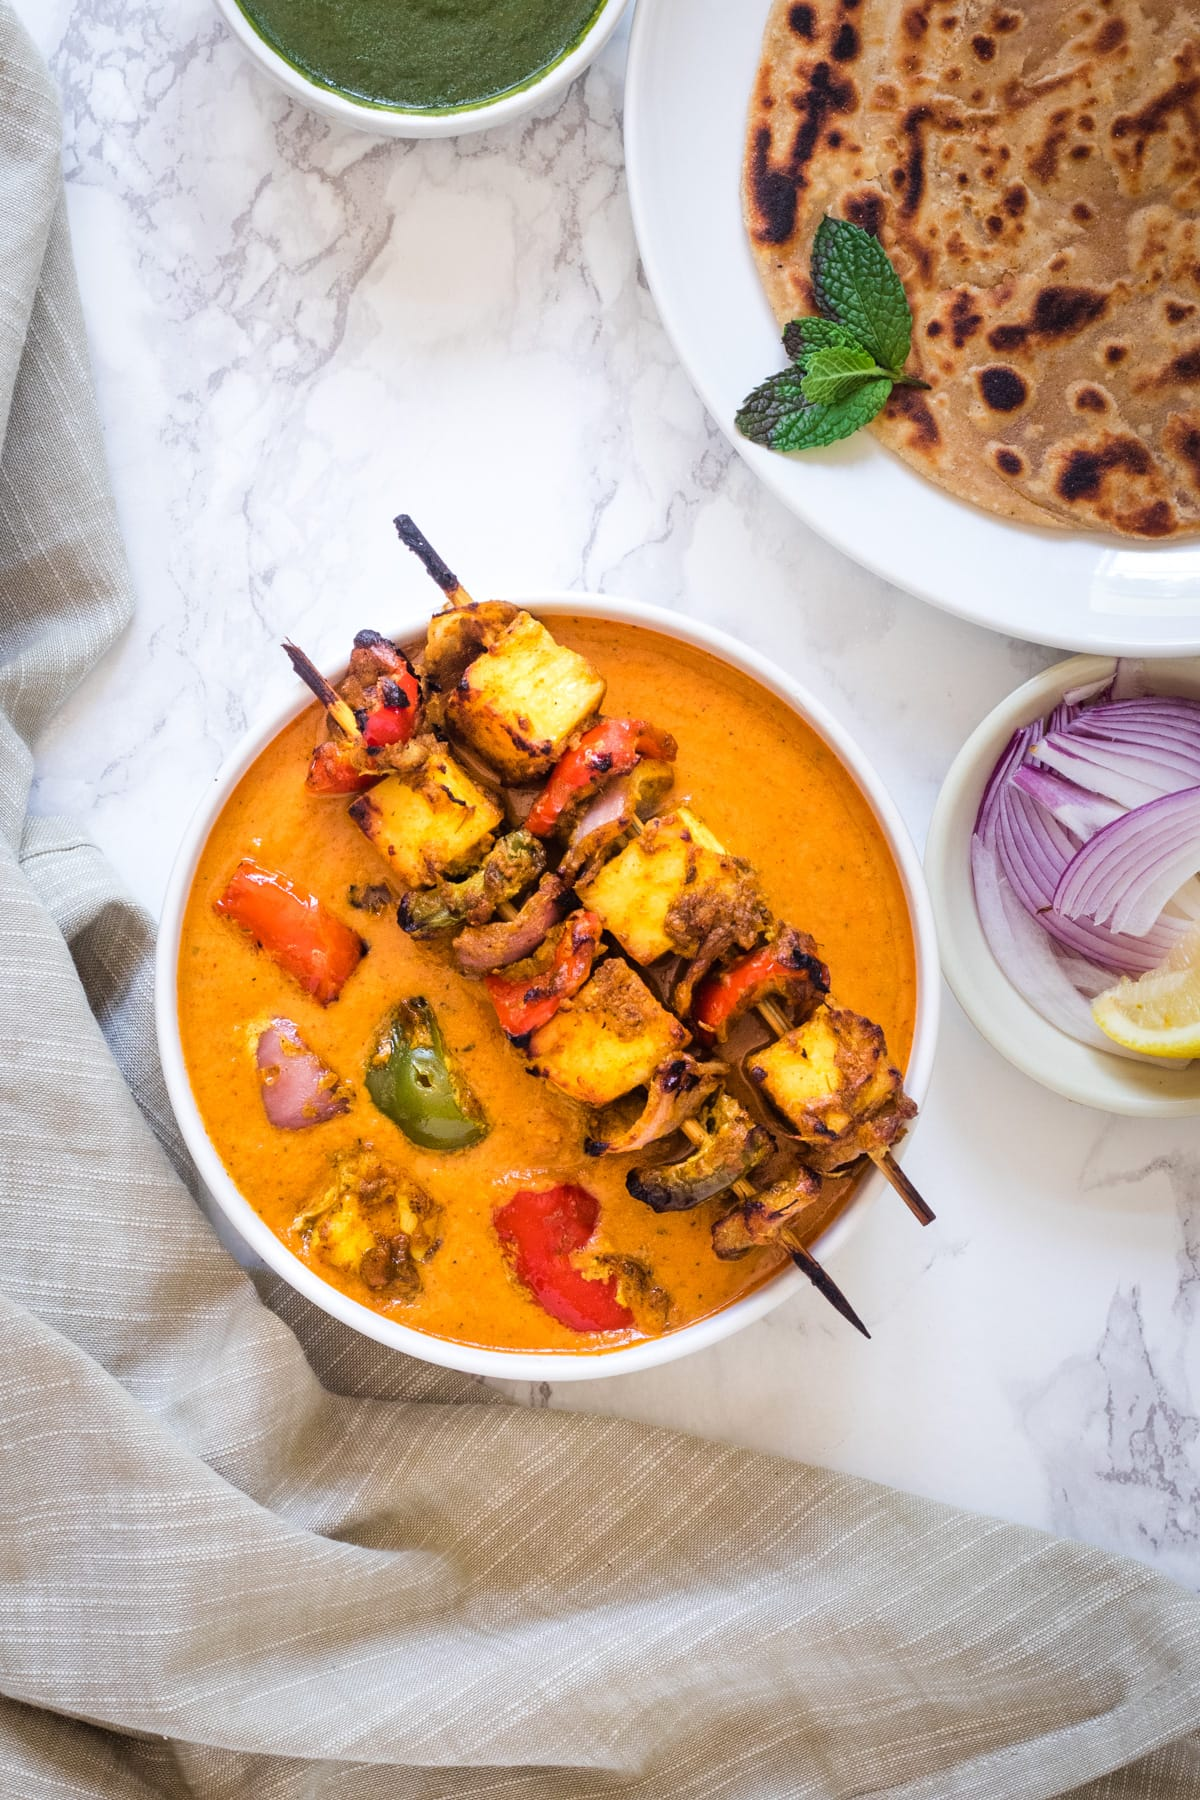 paneer tikka masala gravy with 2 skewers on the bowl, served with paratha, onions, chutney, lemon wedge